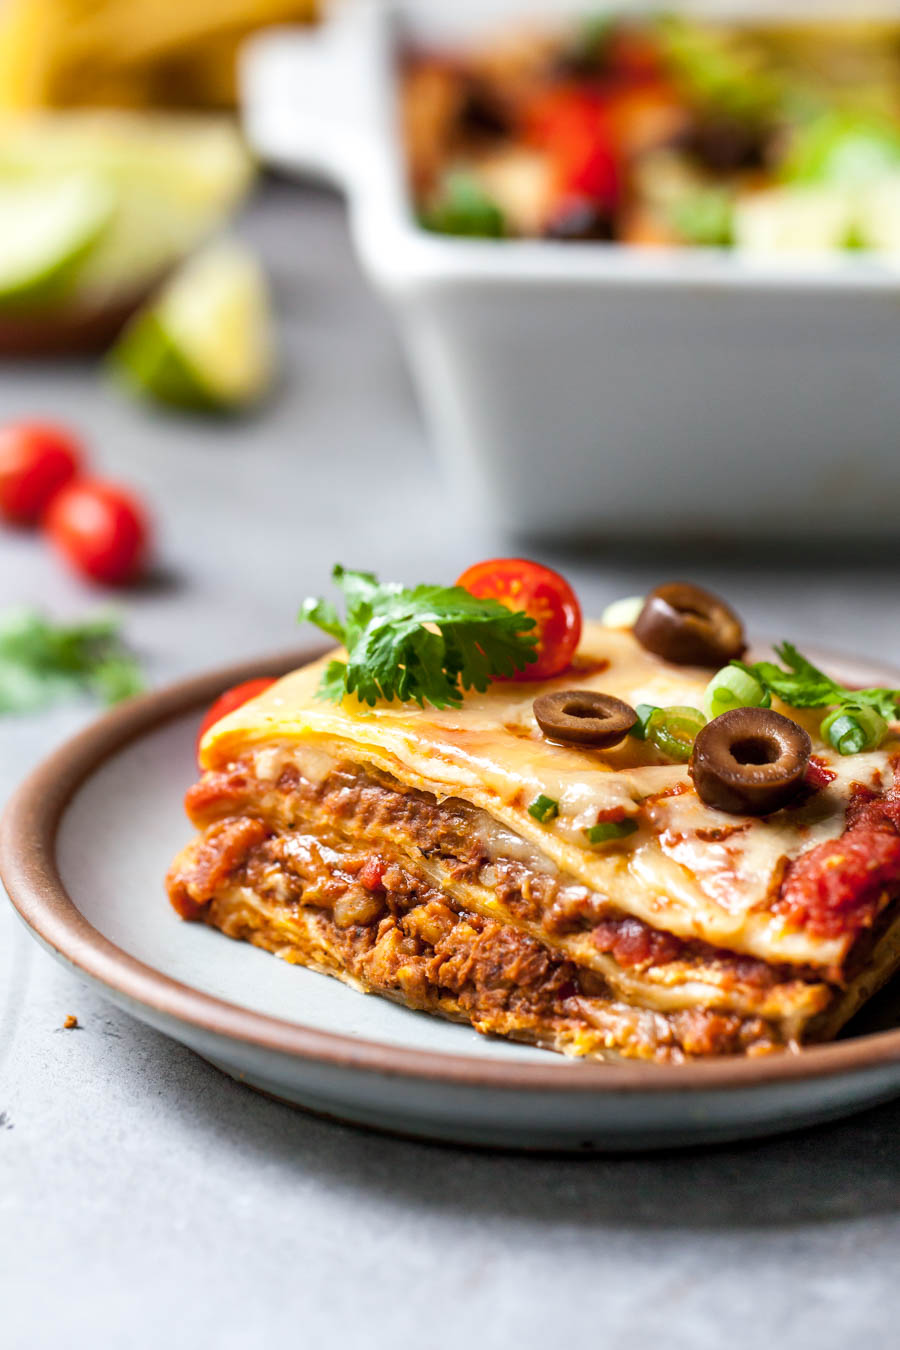 Layered Mexican Lasagna with Vegan Chorizo and Toppings